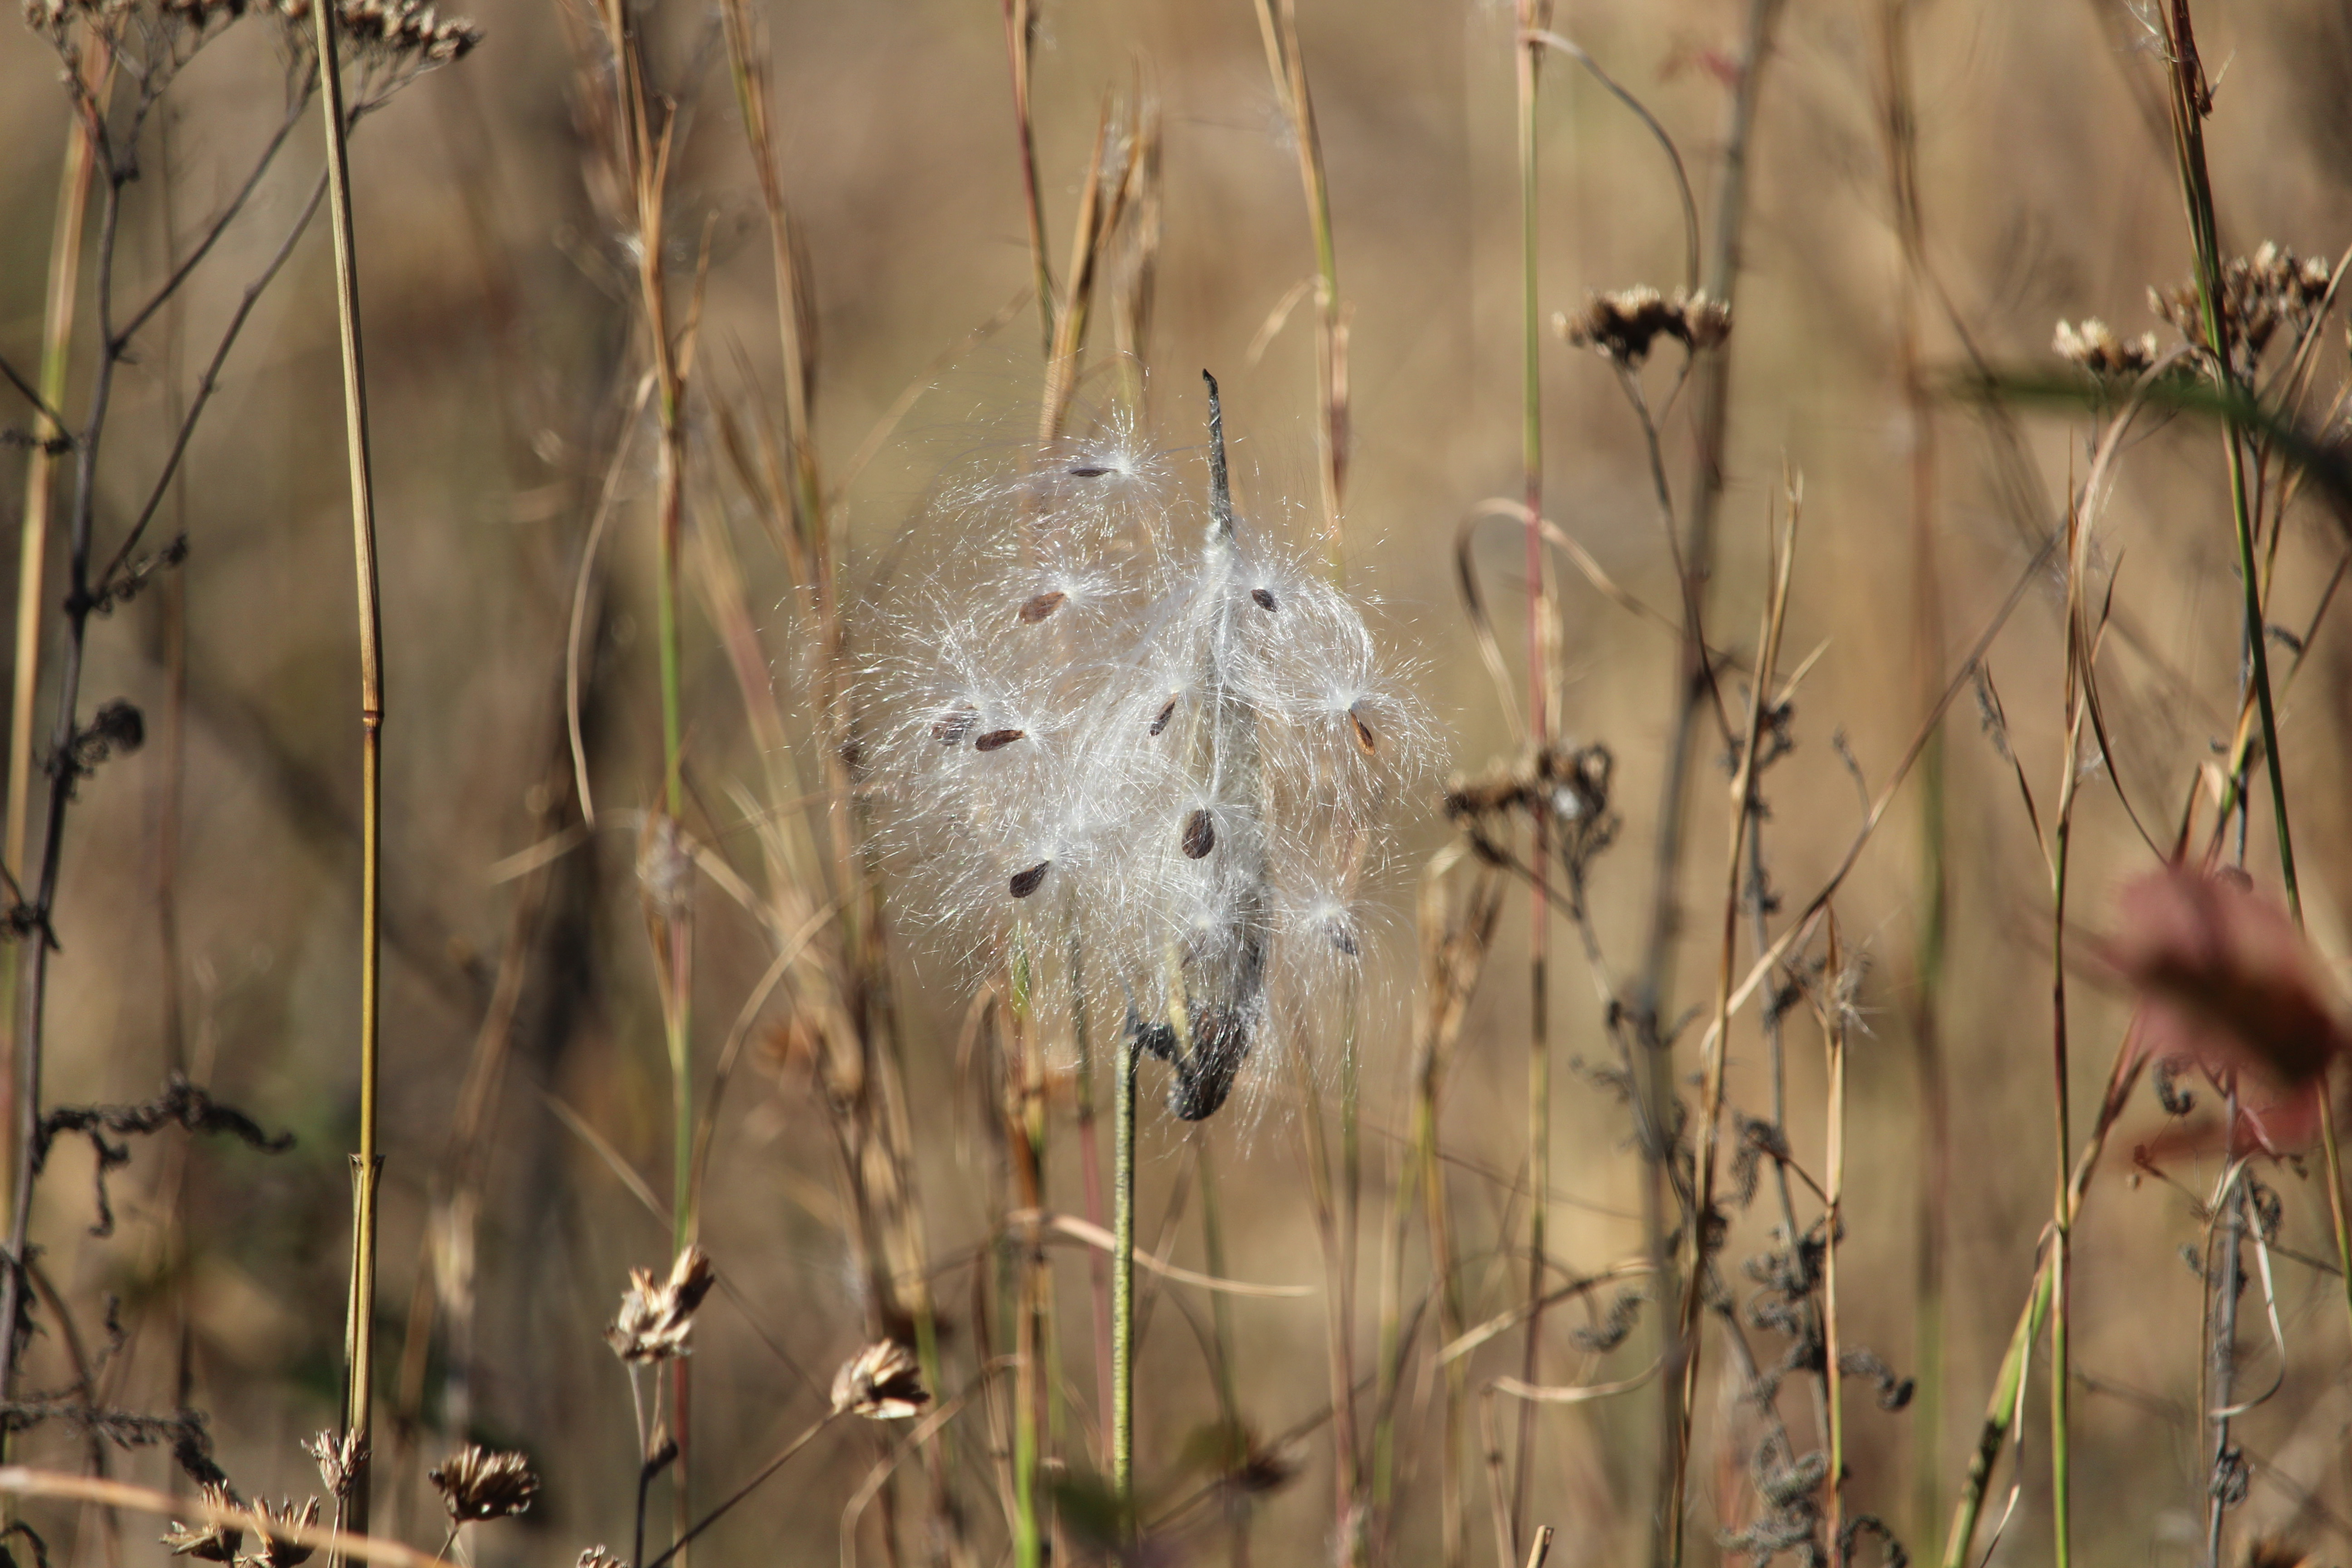 Milkweed in the North Field